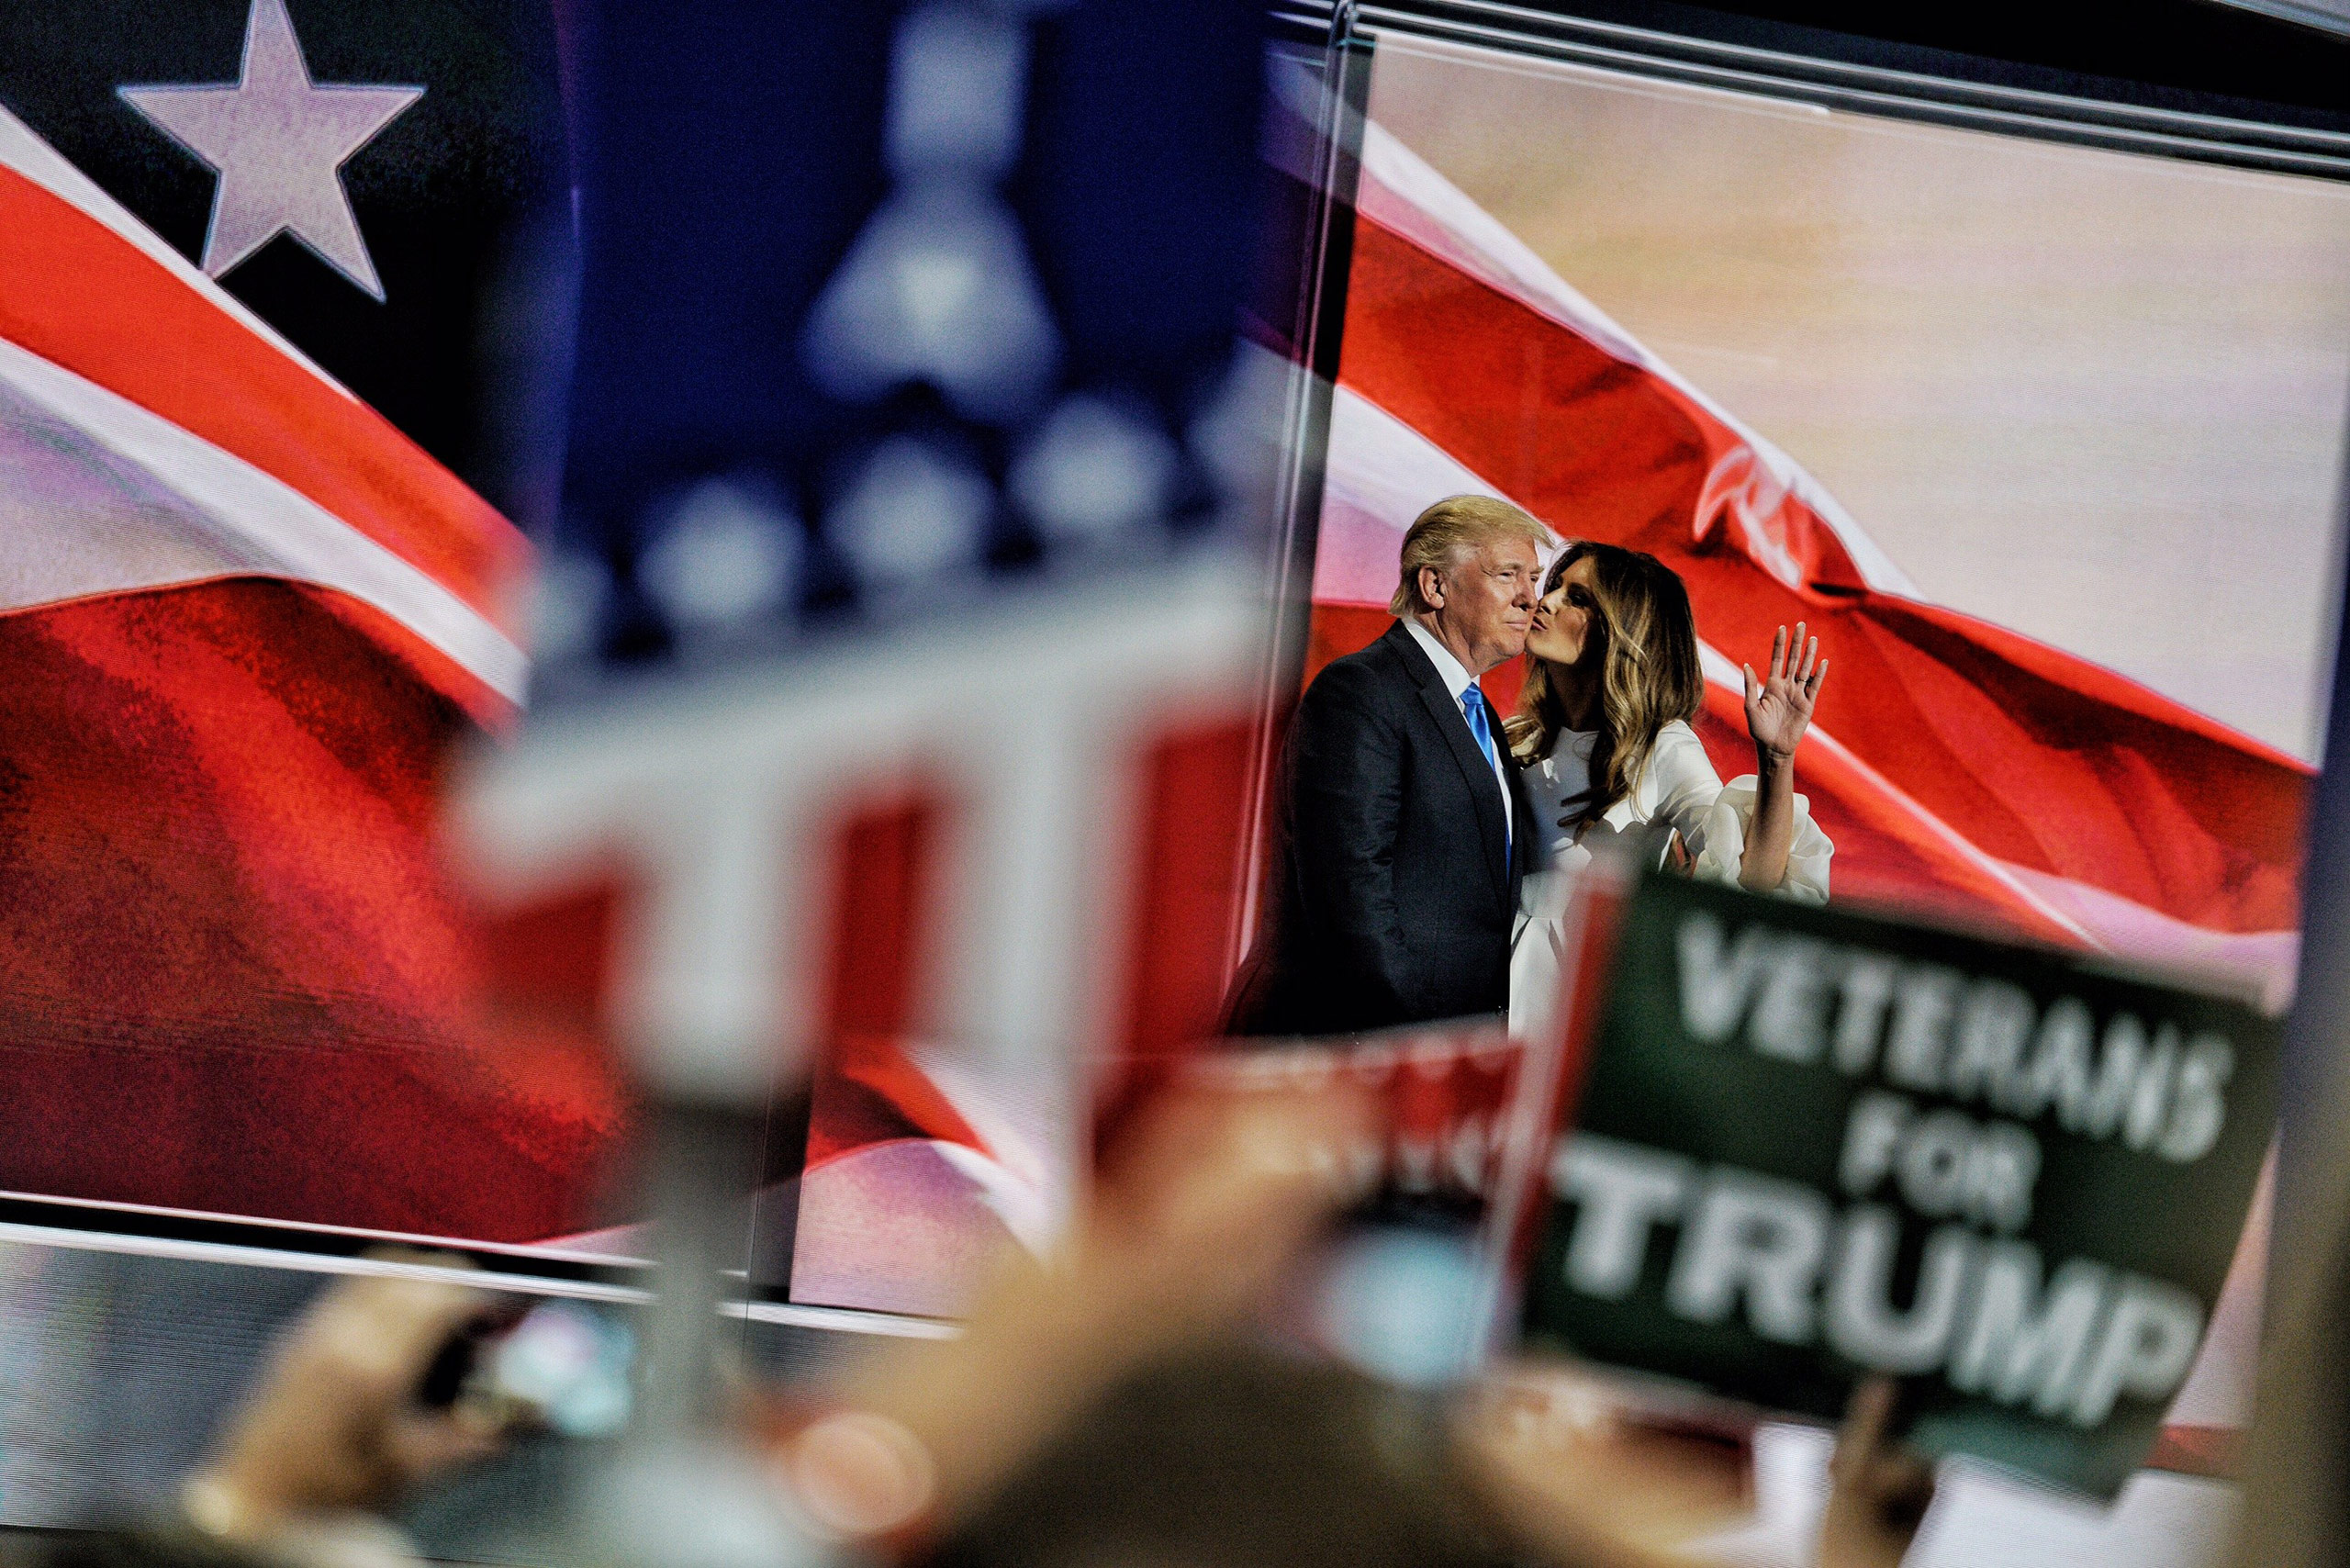 Melania Trump kisses her husband, Donald Trump in front of an ecstatic crowd, on July 18, 2016.From  The 82 Most Unforgettable Photos From the Election